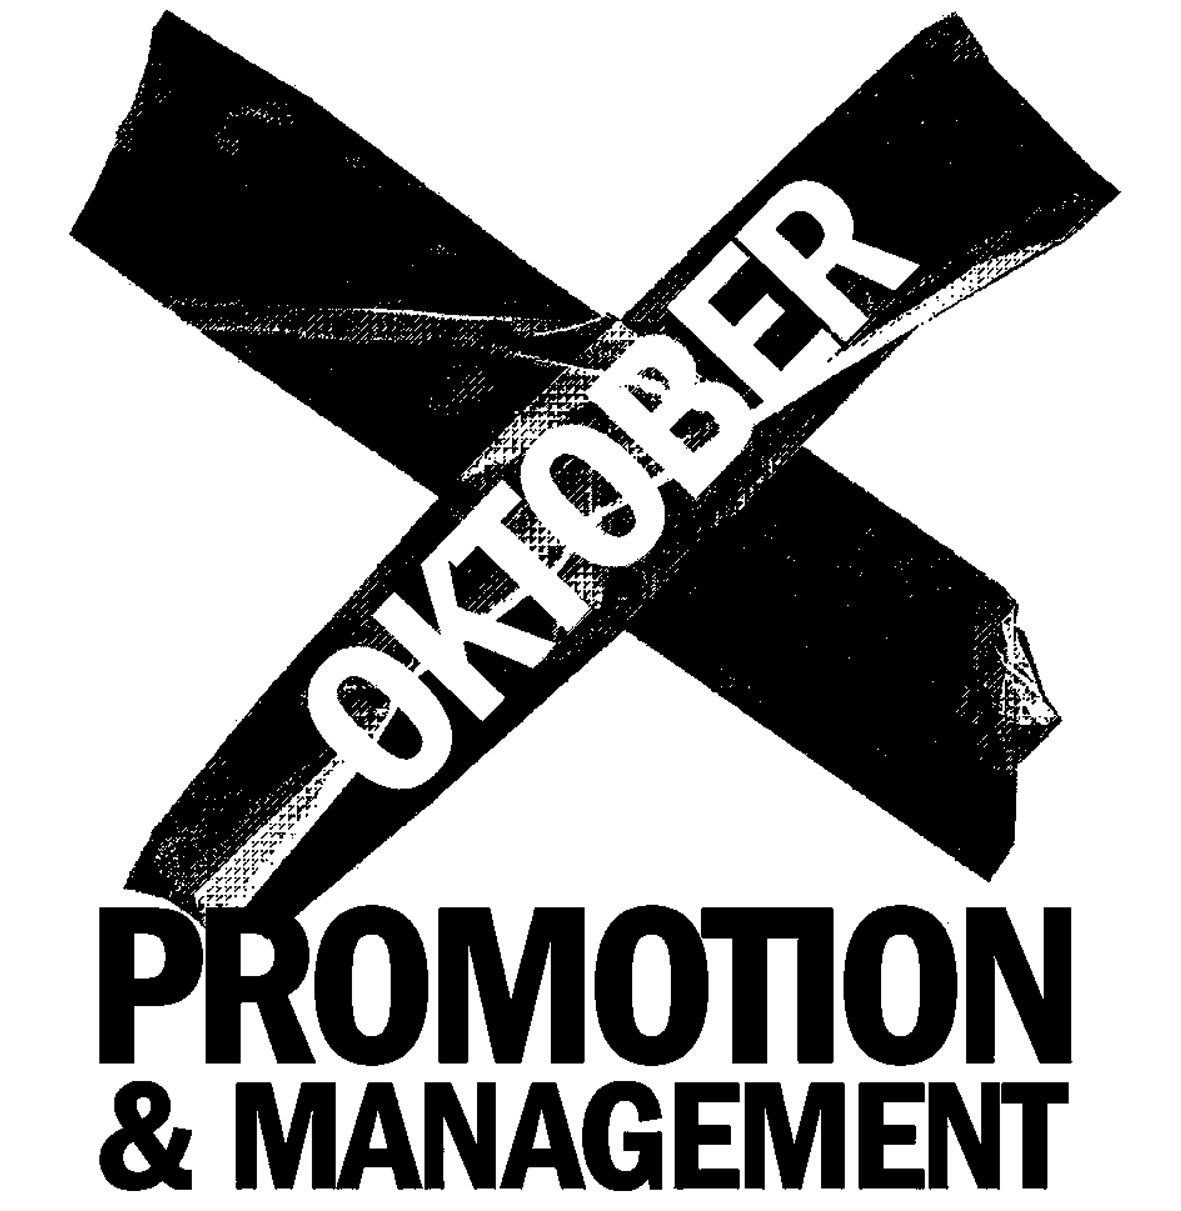 Oktober Promotion & Management